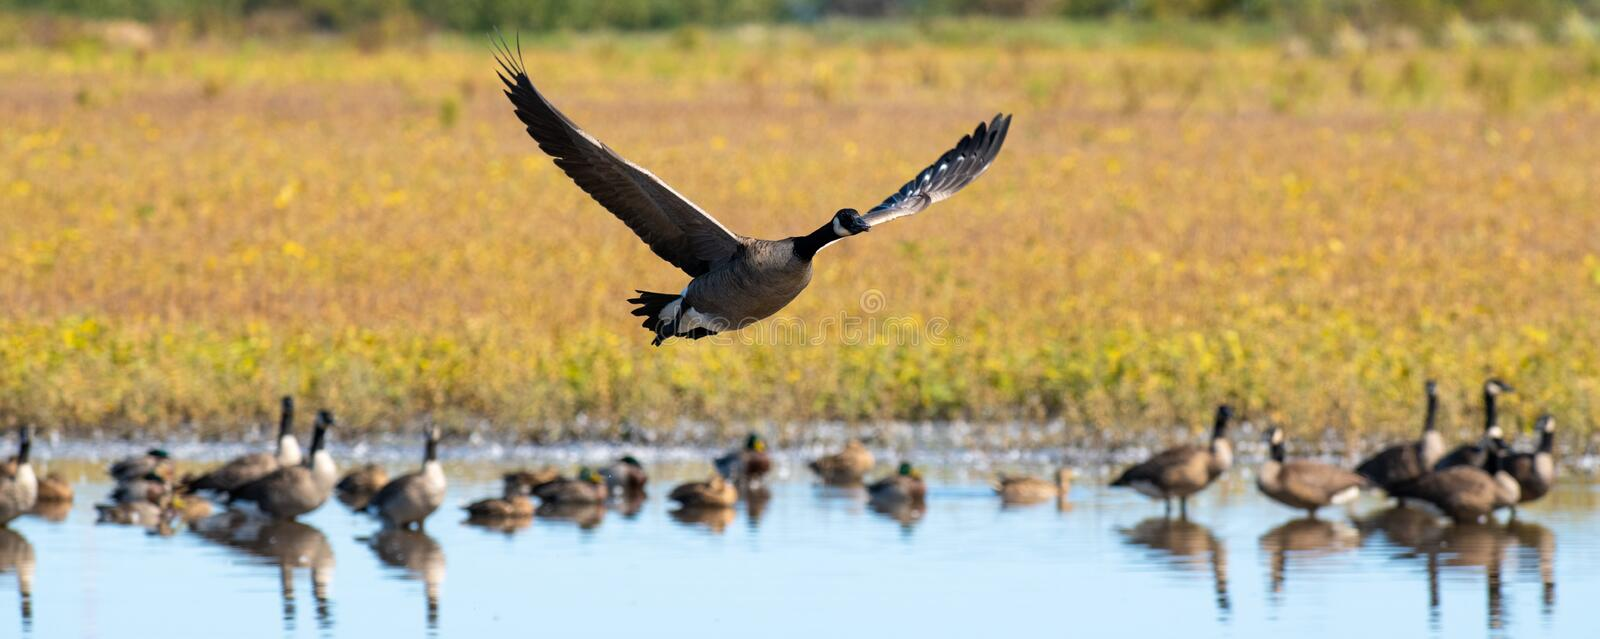 A Canadian Goose flying over a standing water with other birds in it. A Canadian Goose flying over a standing water in a farm field with other birds in it royalty free stock photos